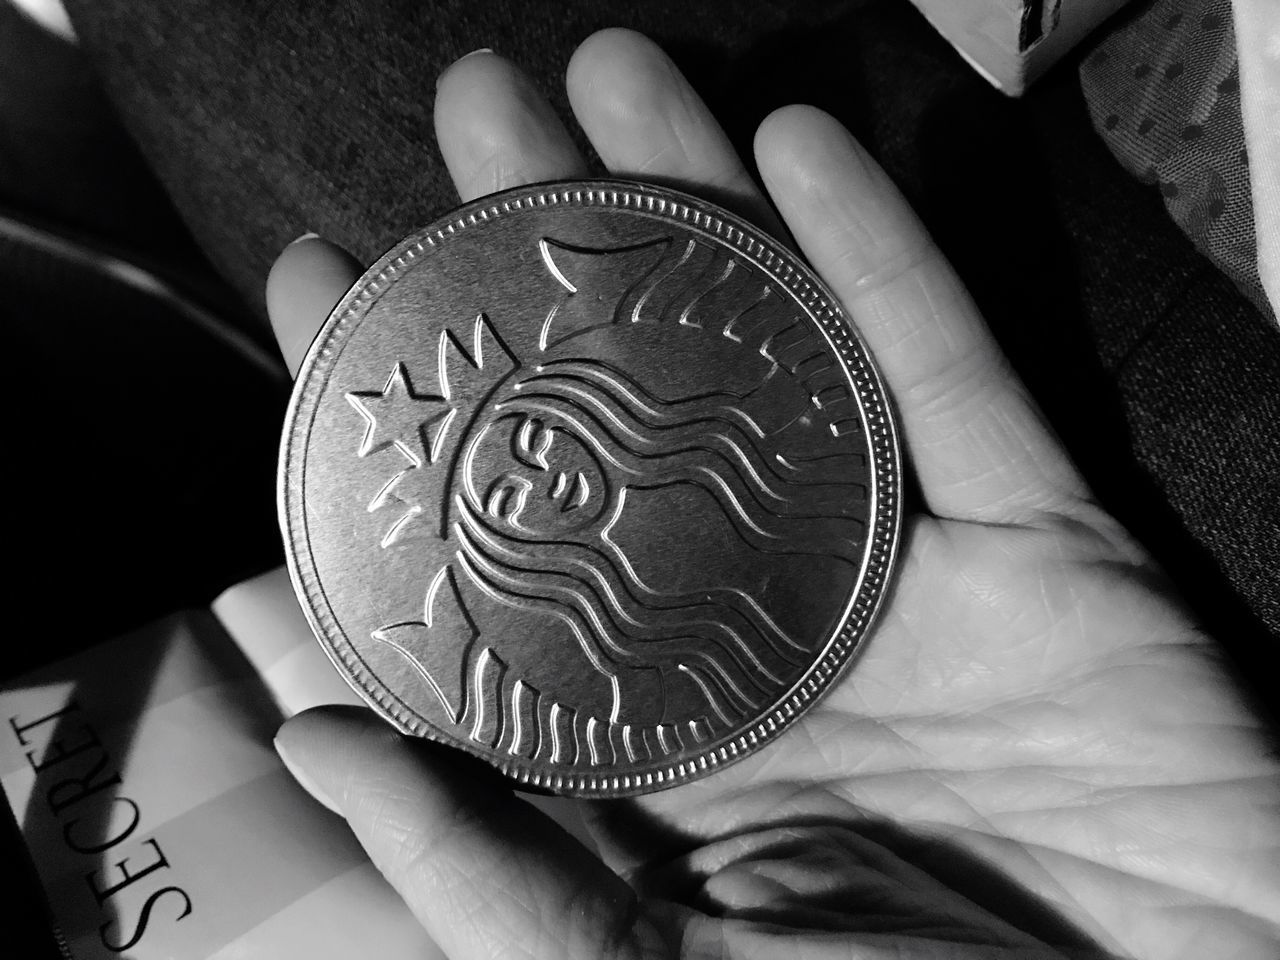 Blackandwhite Black & White Blackandwhite Photography Black And White Photography Human Hand Human Body Part One Person Holding Real People Indoors  Unrecognizable Person Pattern Food And Drink Men Close-up Food One Man Only Day Ready-to-eat People Adult Starbucks Coin Chocolate